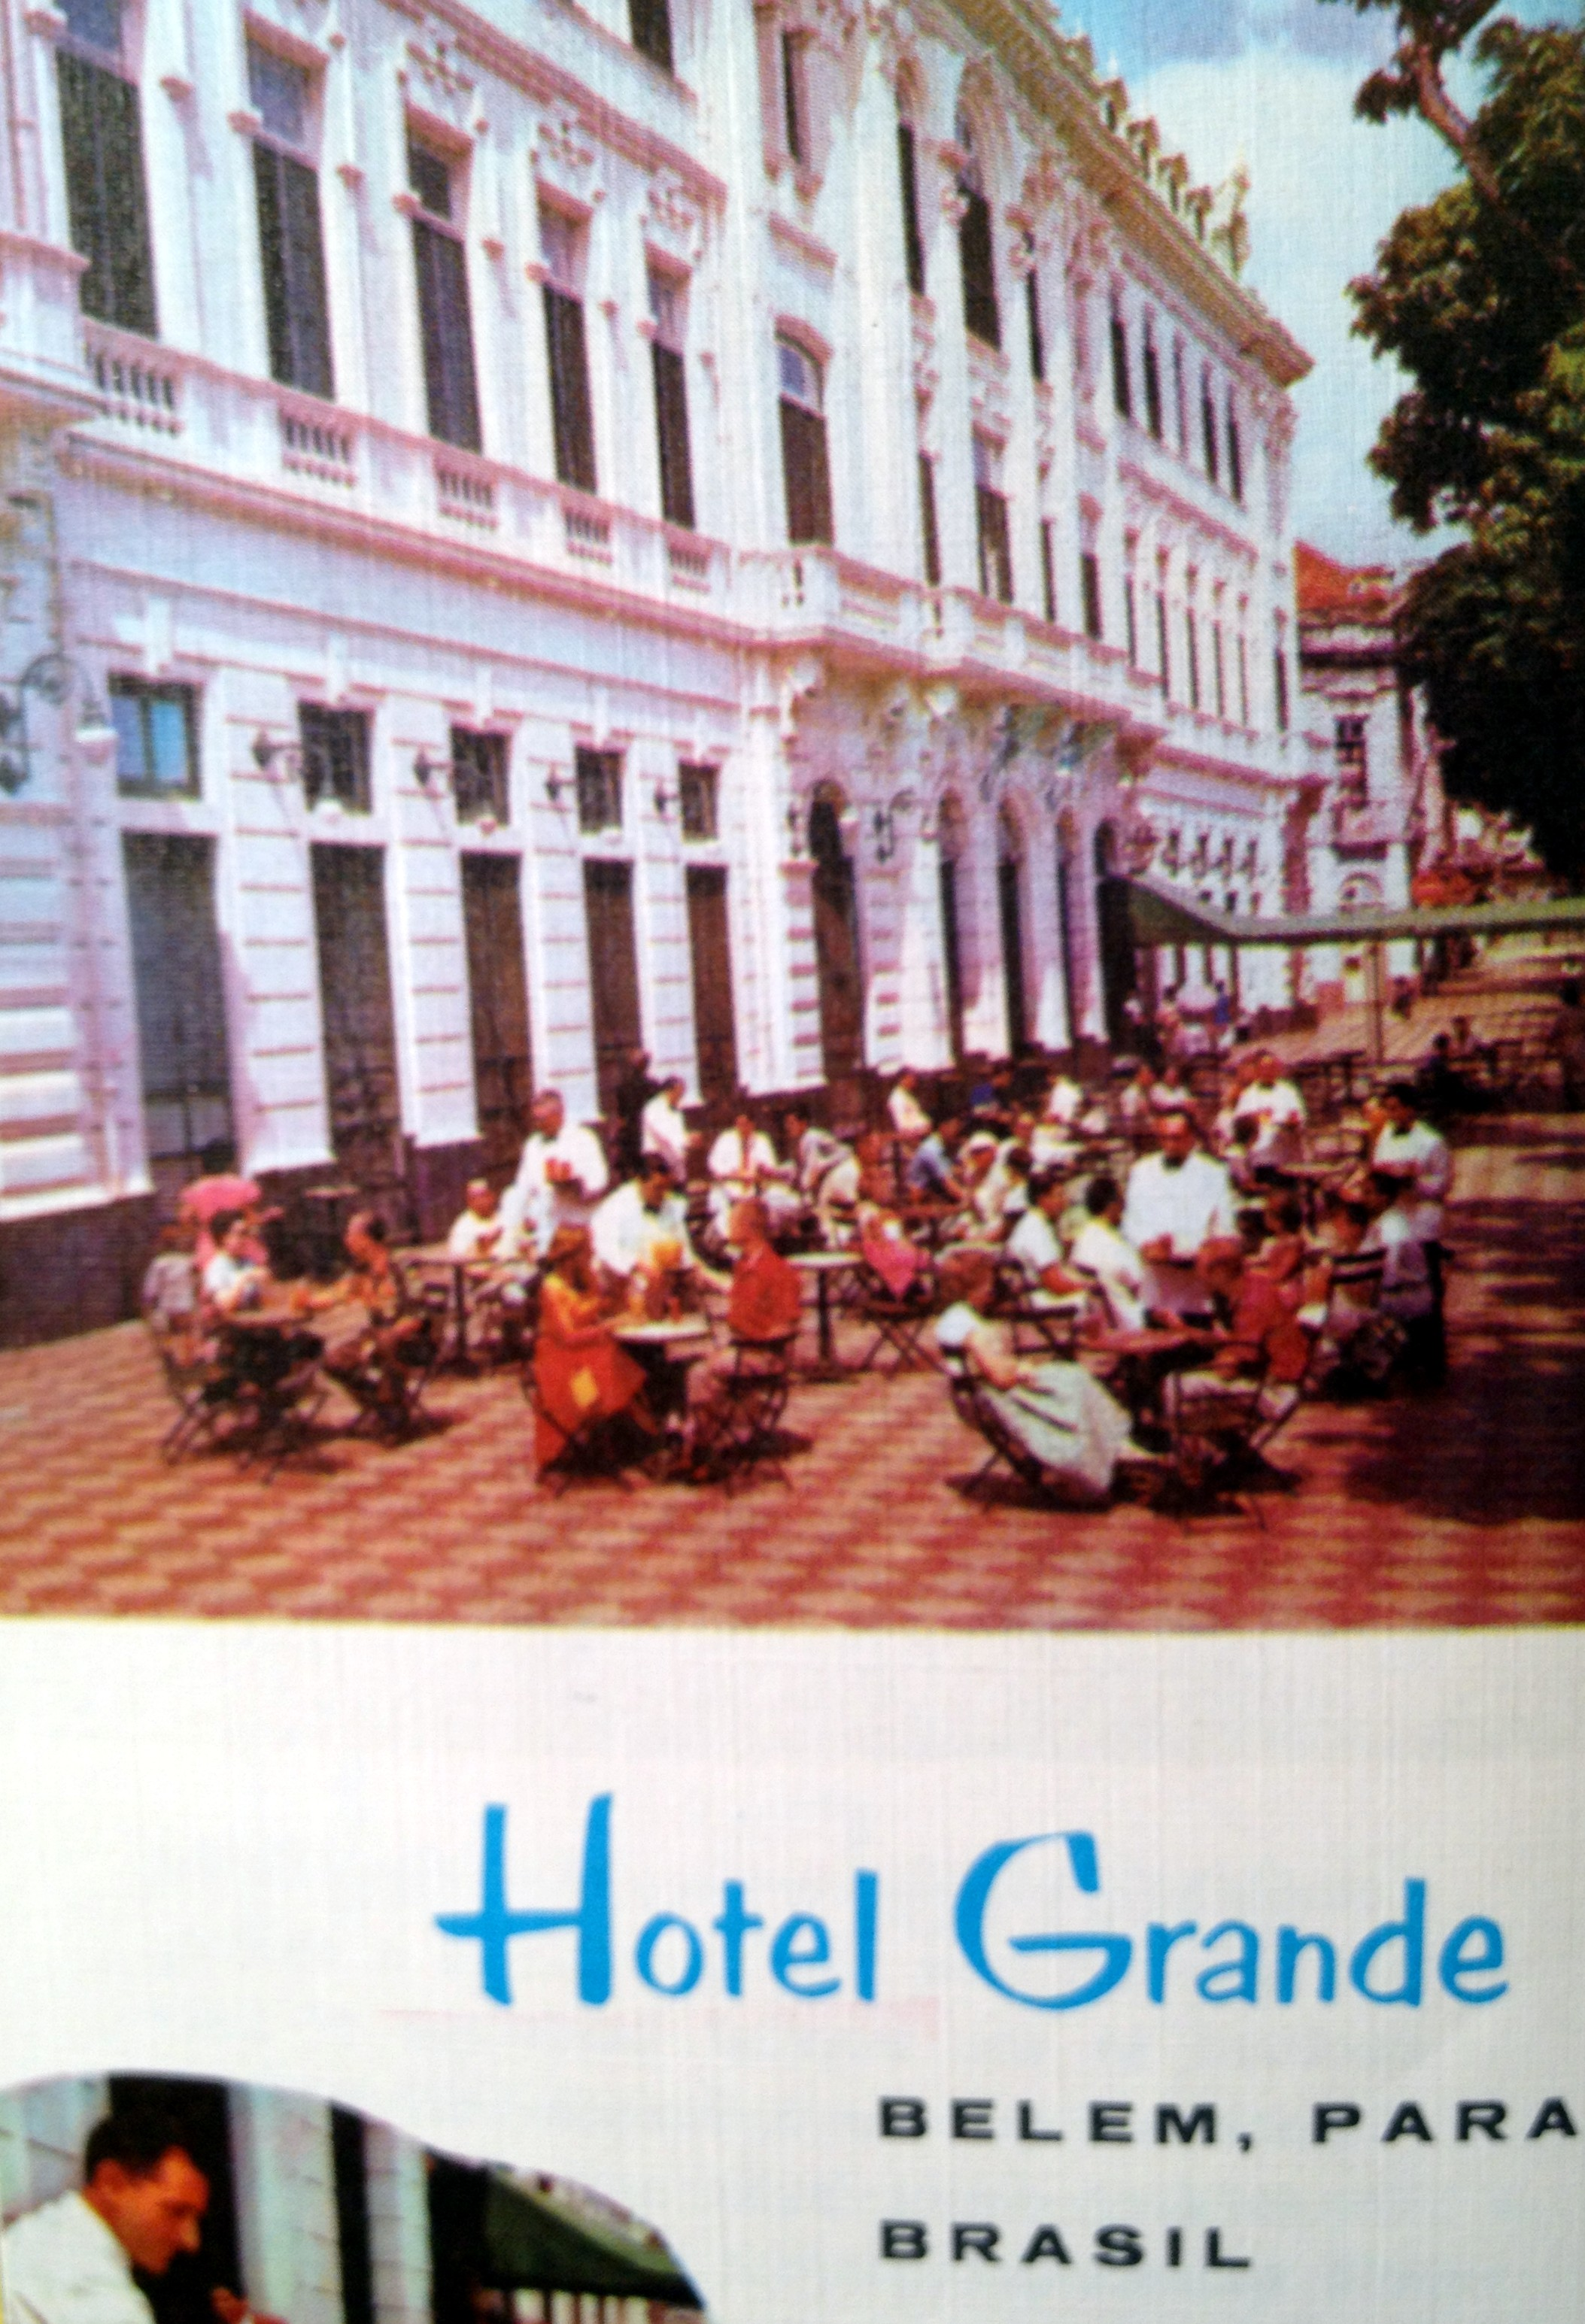 Hotel Grande InterContinental, Belem, Brazil. Photo reprinted with permission of the Neal Prince Trust.